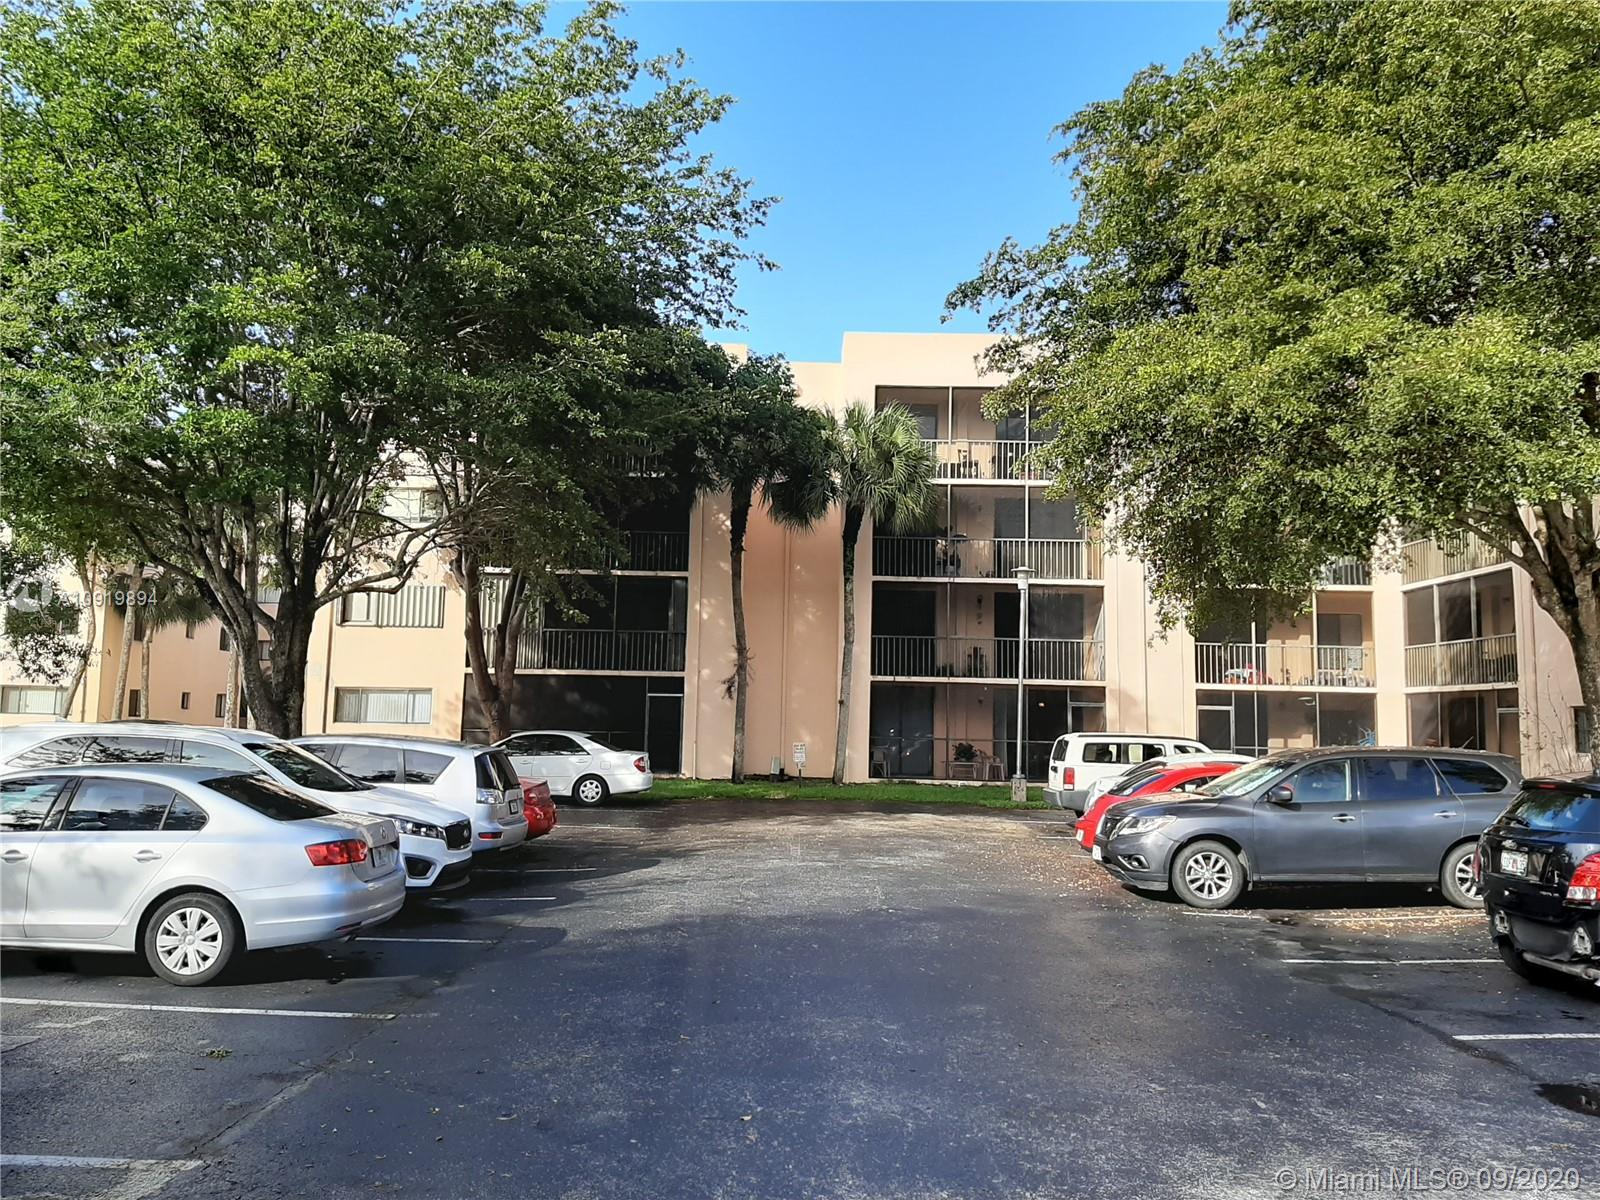 3/2 Condo. Gated community w/24 hour security in the heart of Kendall. Ceramic tile thru-out, storage closet & large screened balcony. Spacious kitchen with breakfast area. Washer and Dryer in every floor. Community has lots amenities, plenty of guest parking spaces, tropical gardens, club House, 4 tennis/racquetball courts, 4 large pools, BBQ area, guard entry. NO PETS ALLOWED BY ASSOC.